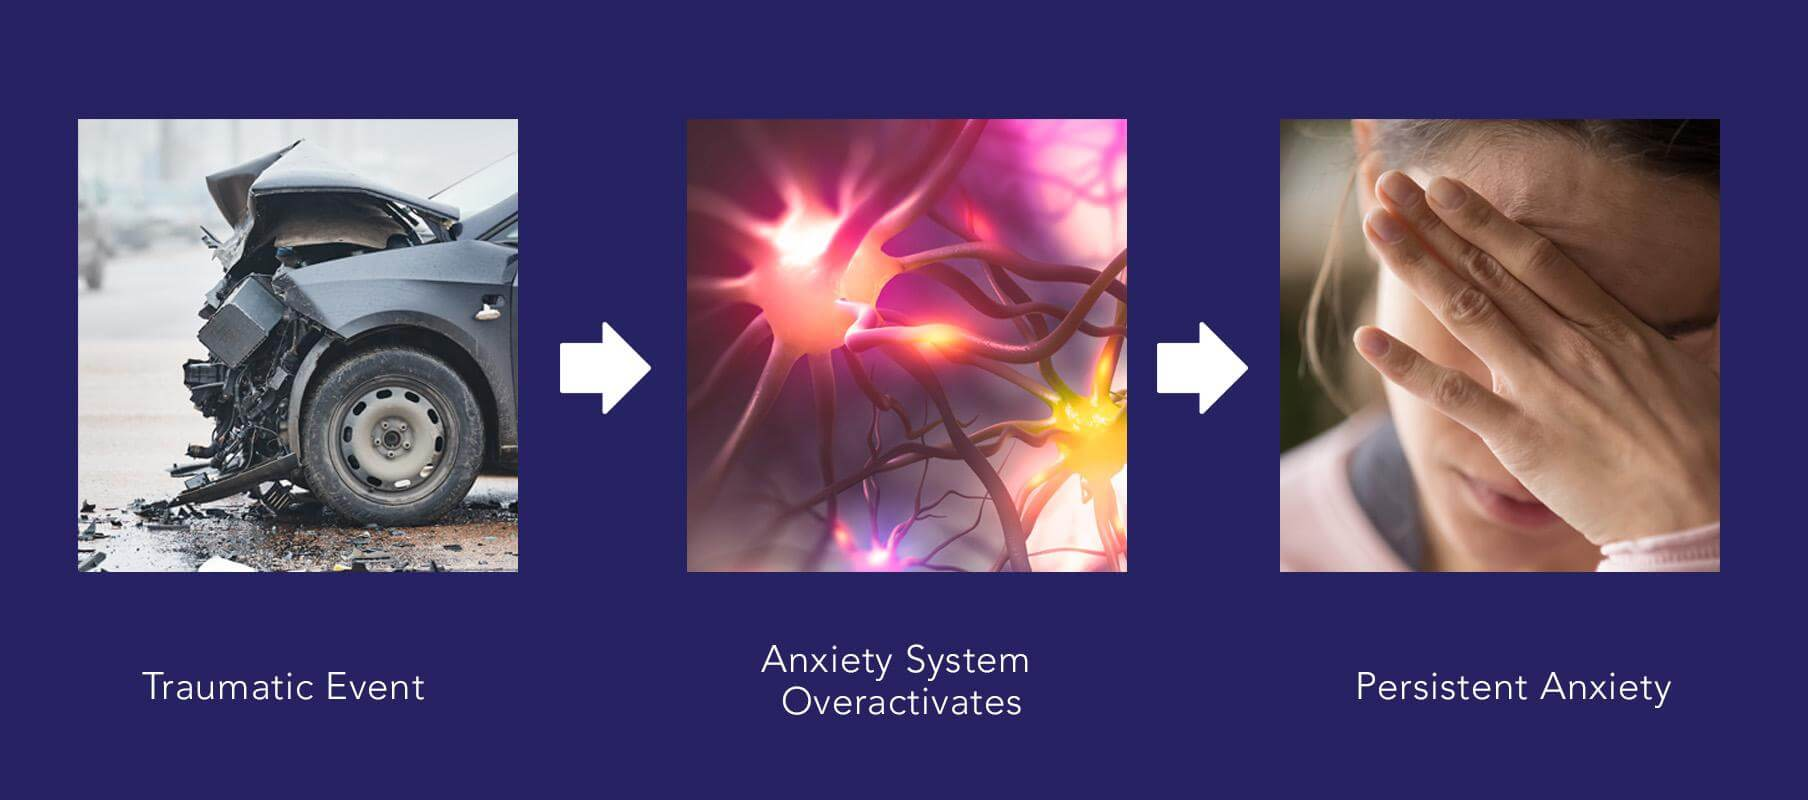 Traumatic Event > Anxiety System Overactivates > Persistent Anxiety -  Learn why some people develop long-term anxiety after a concussion and what you can do about it.